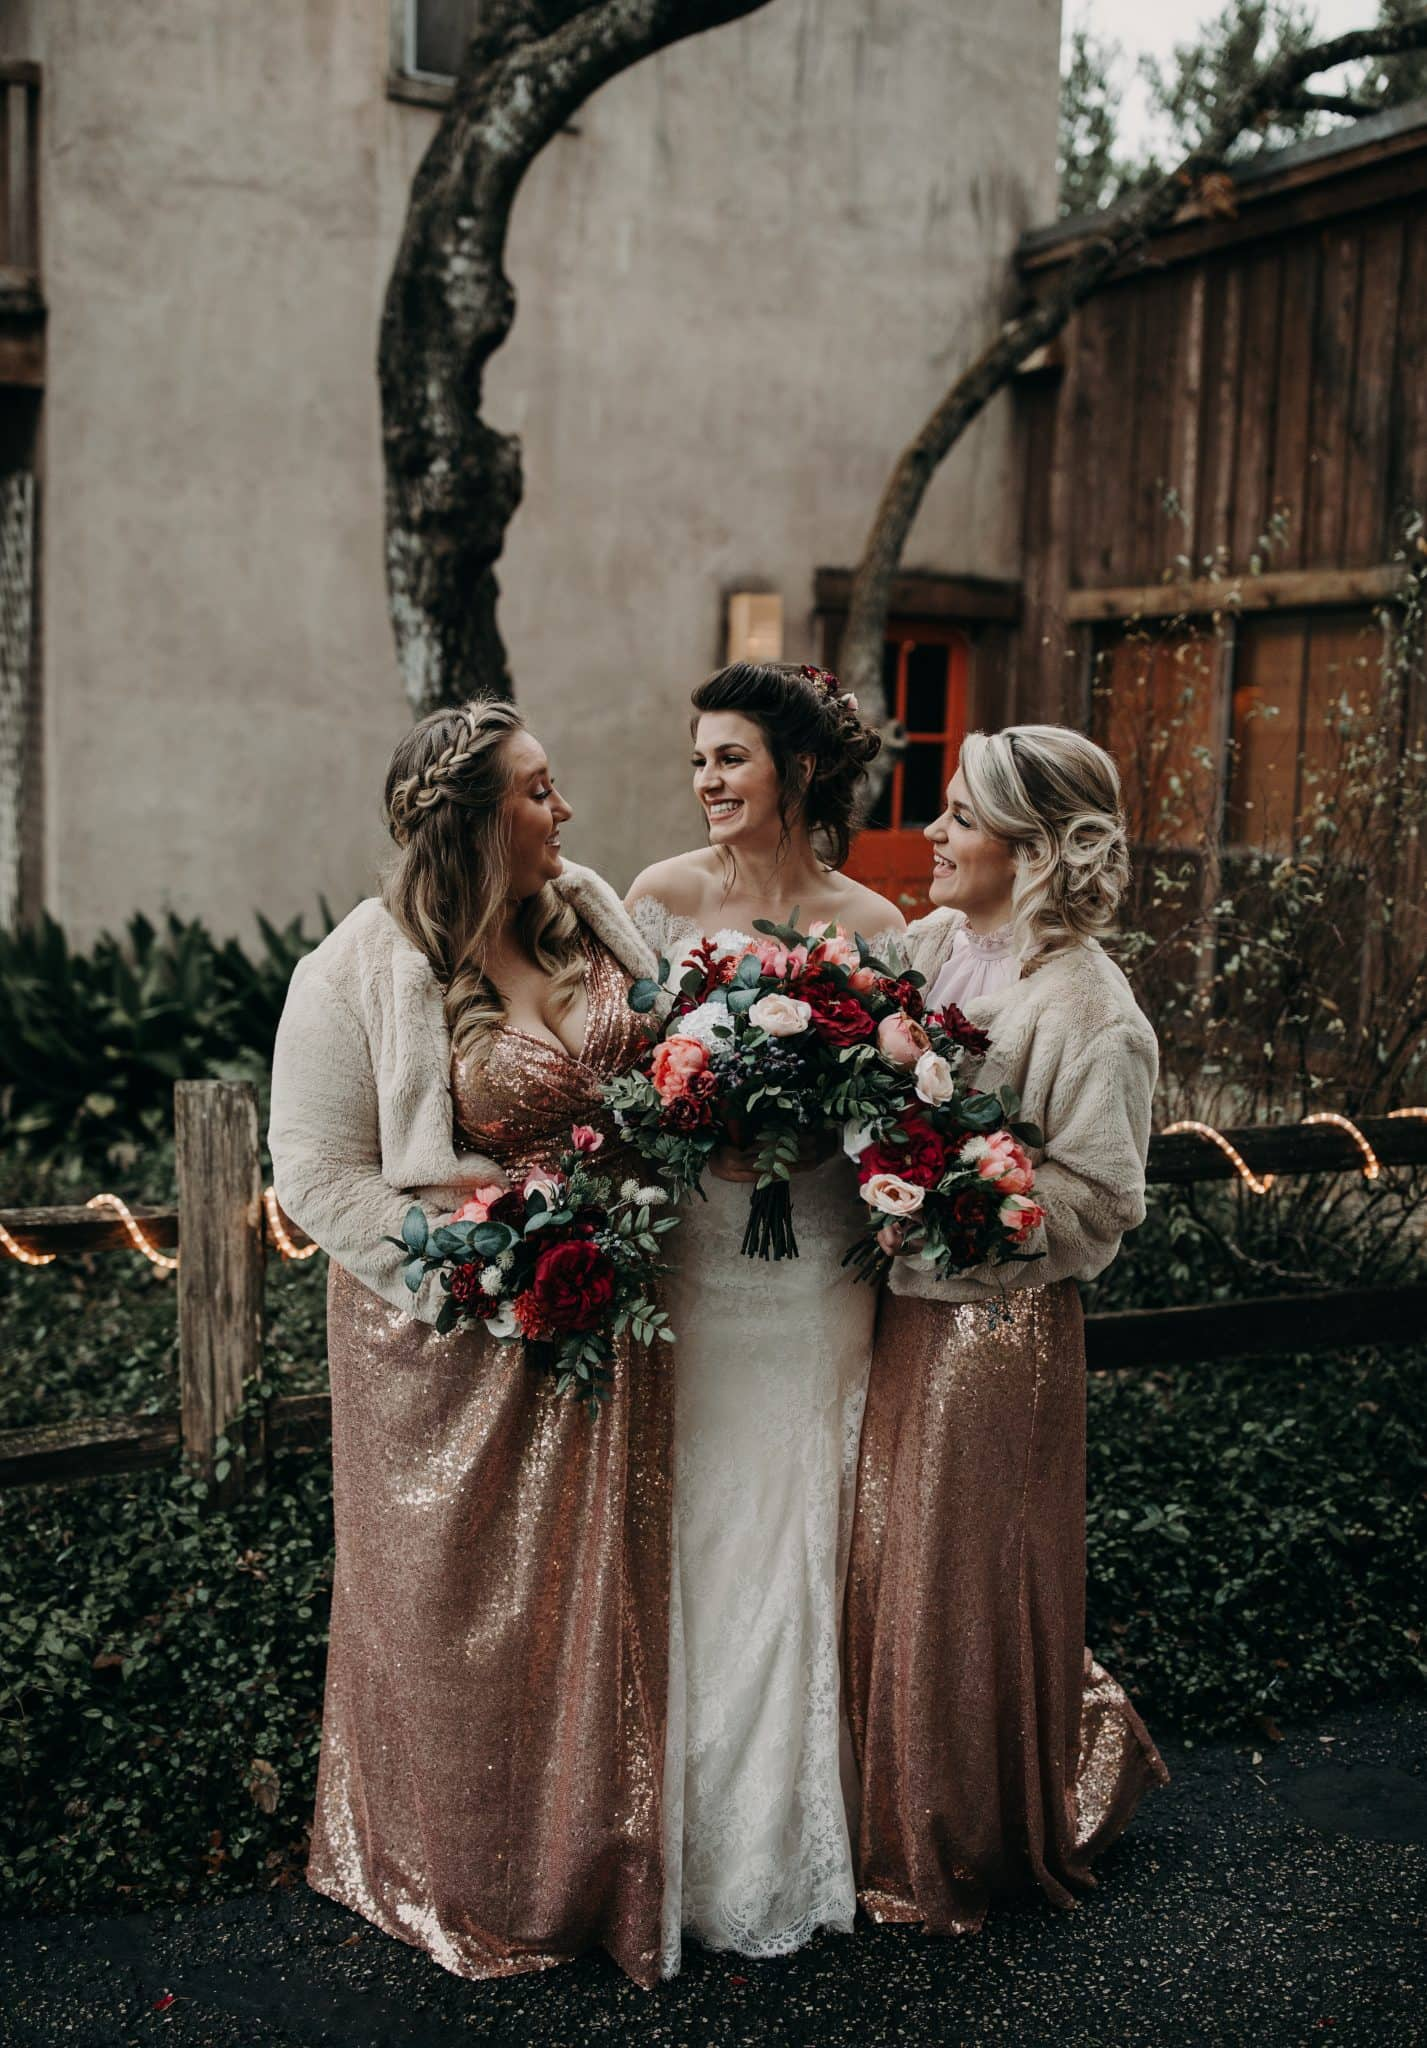 bride and her 2 bridesmaid in sequin dresses holding their bouquets and smiling at each other on the lawn of the House on the Hill in Austin, Texas